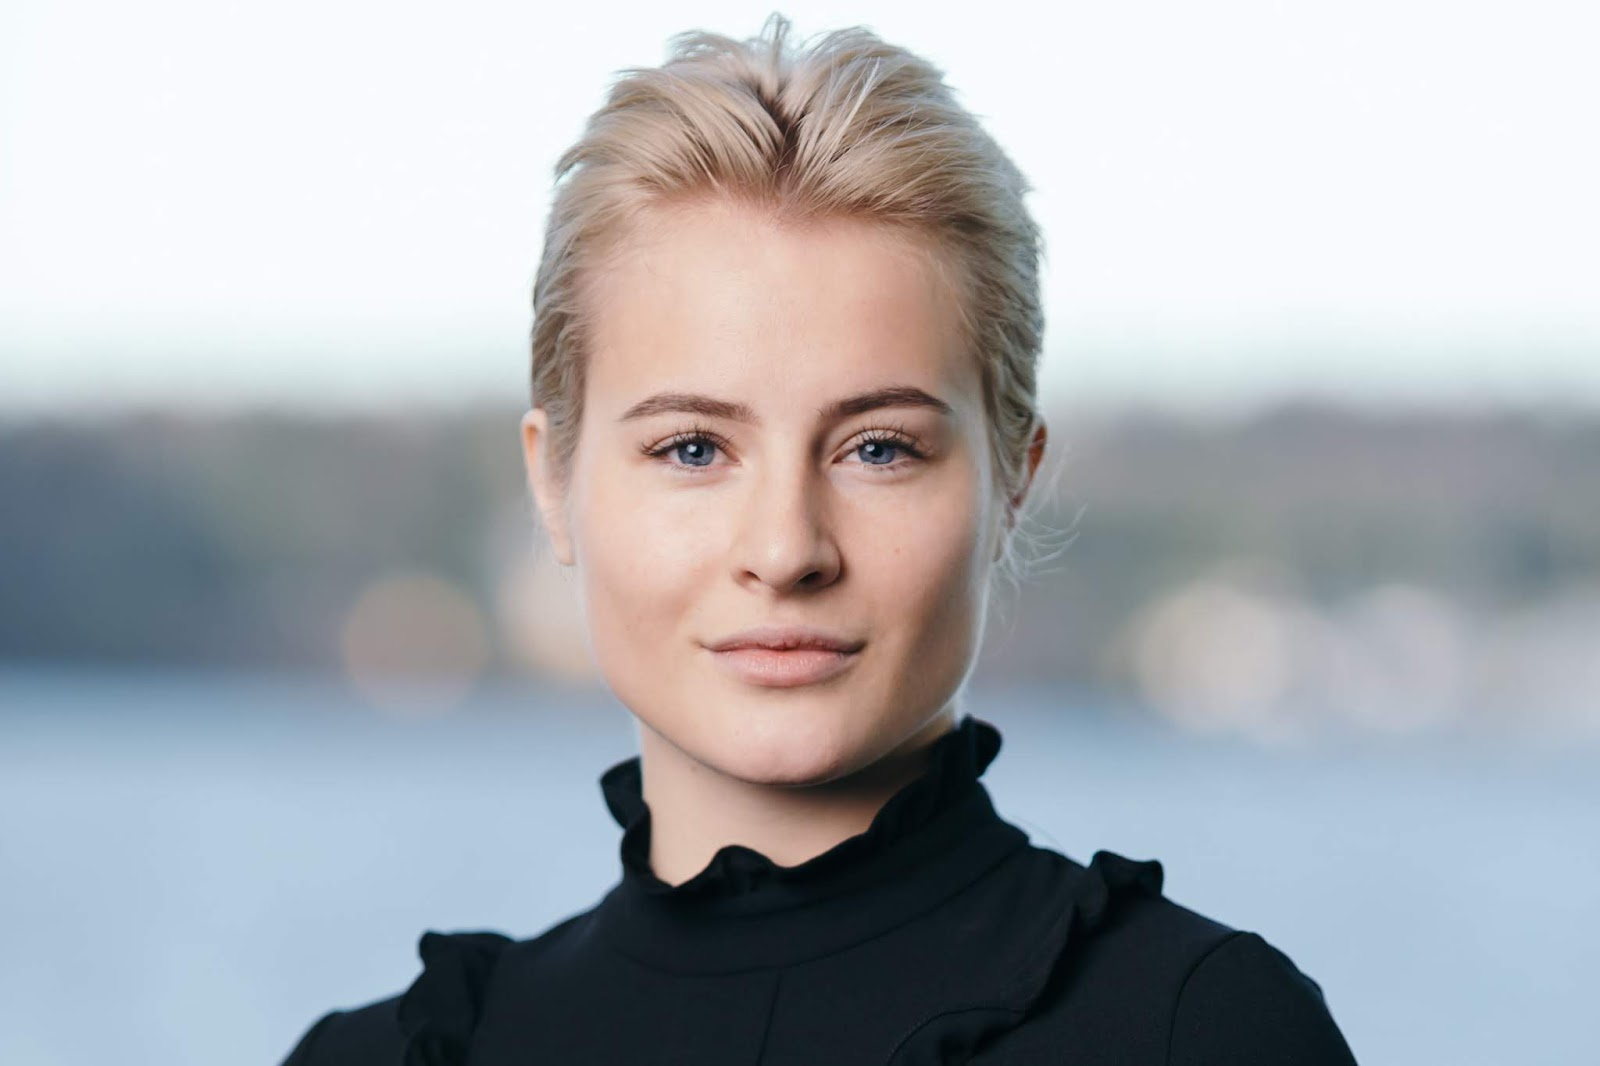 Katharina Gamlemshaug Andresen: Net worth: $1.4 Billion, Age: 23